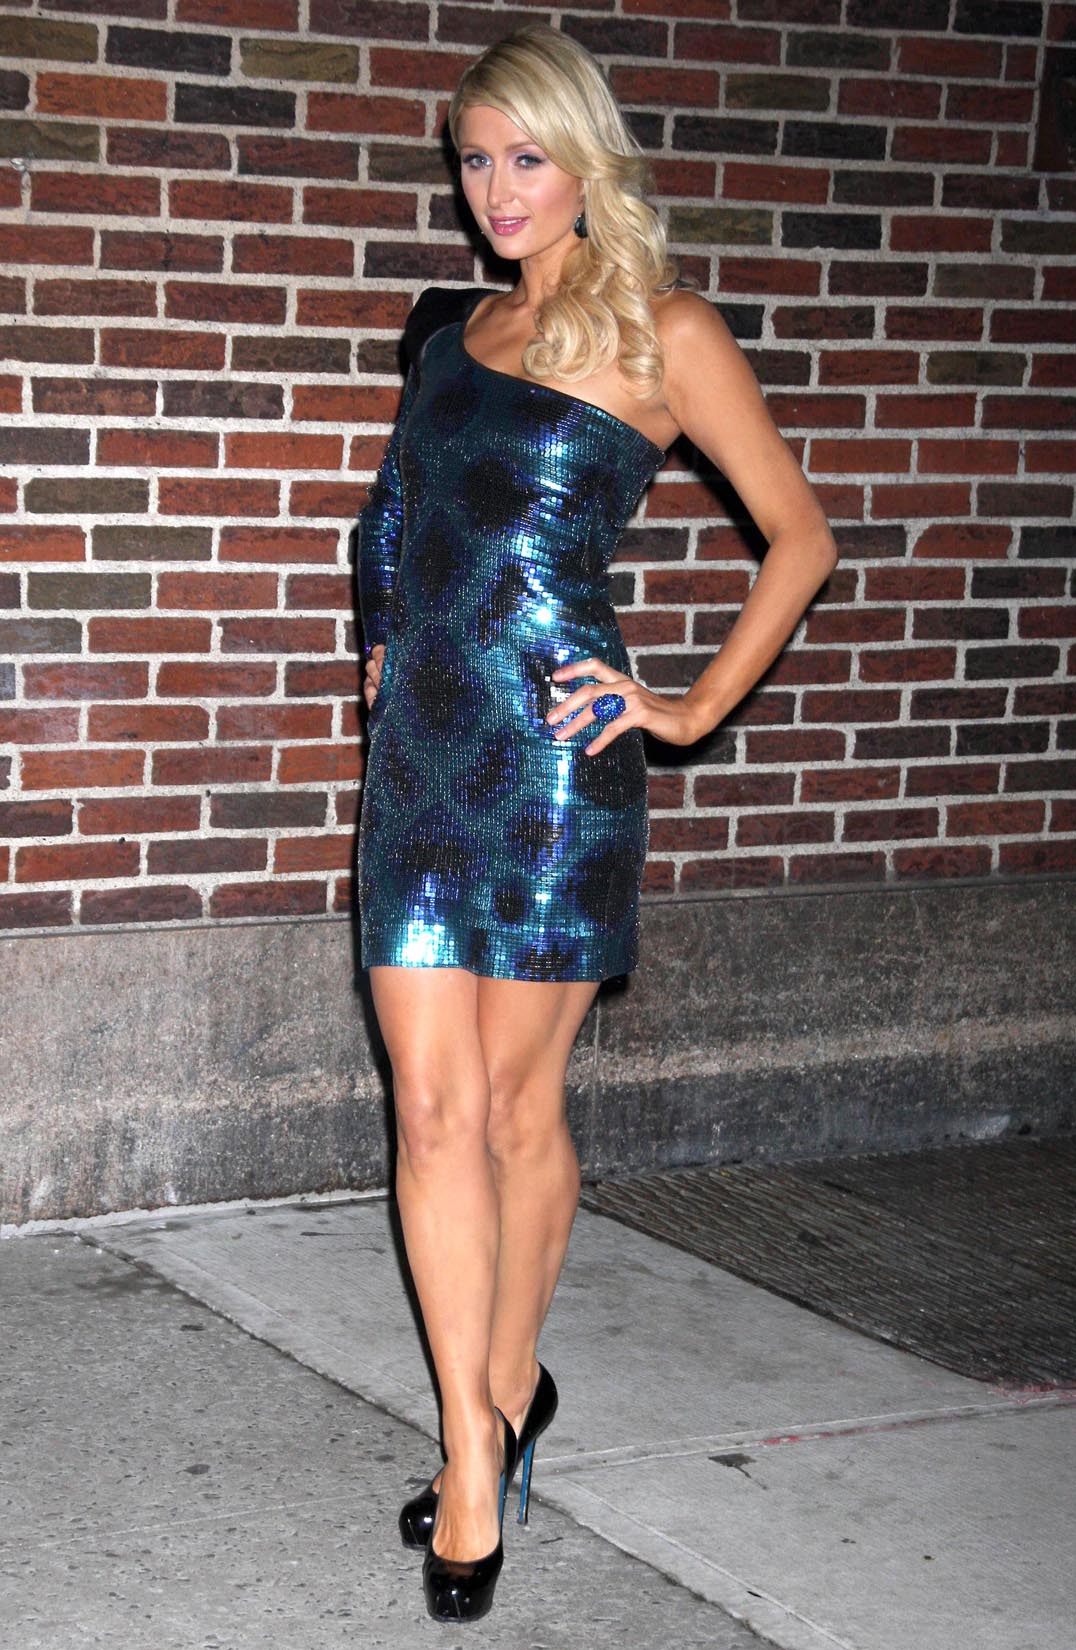 nude Legs 9. Paris Hilton (83 pictures) Young, YouTube, panties